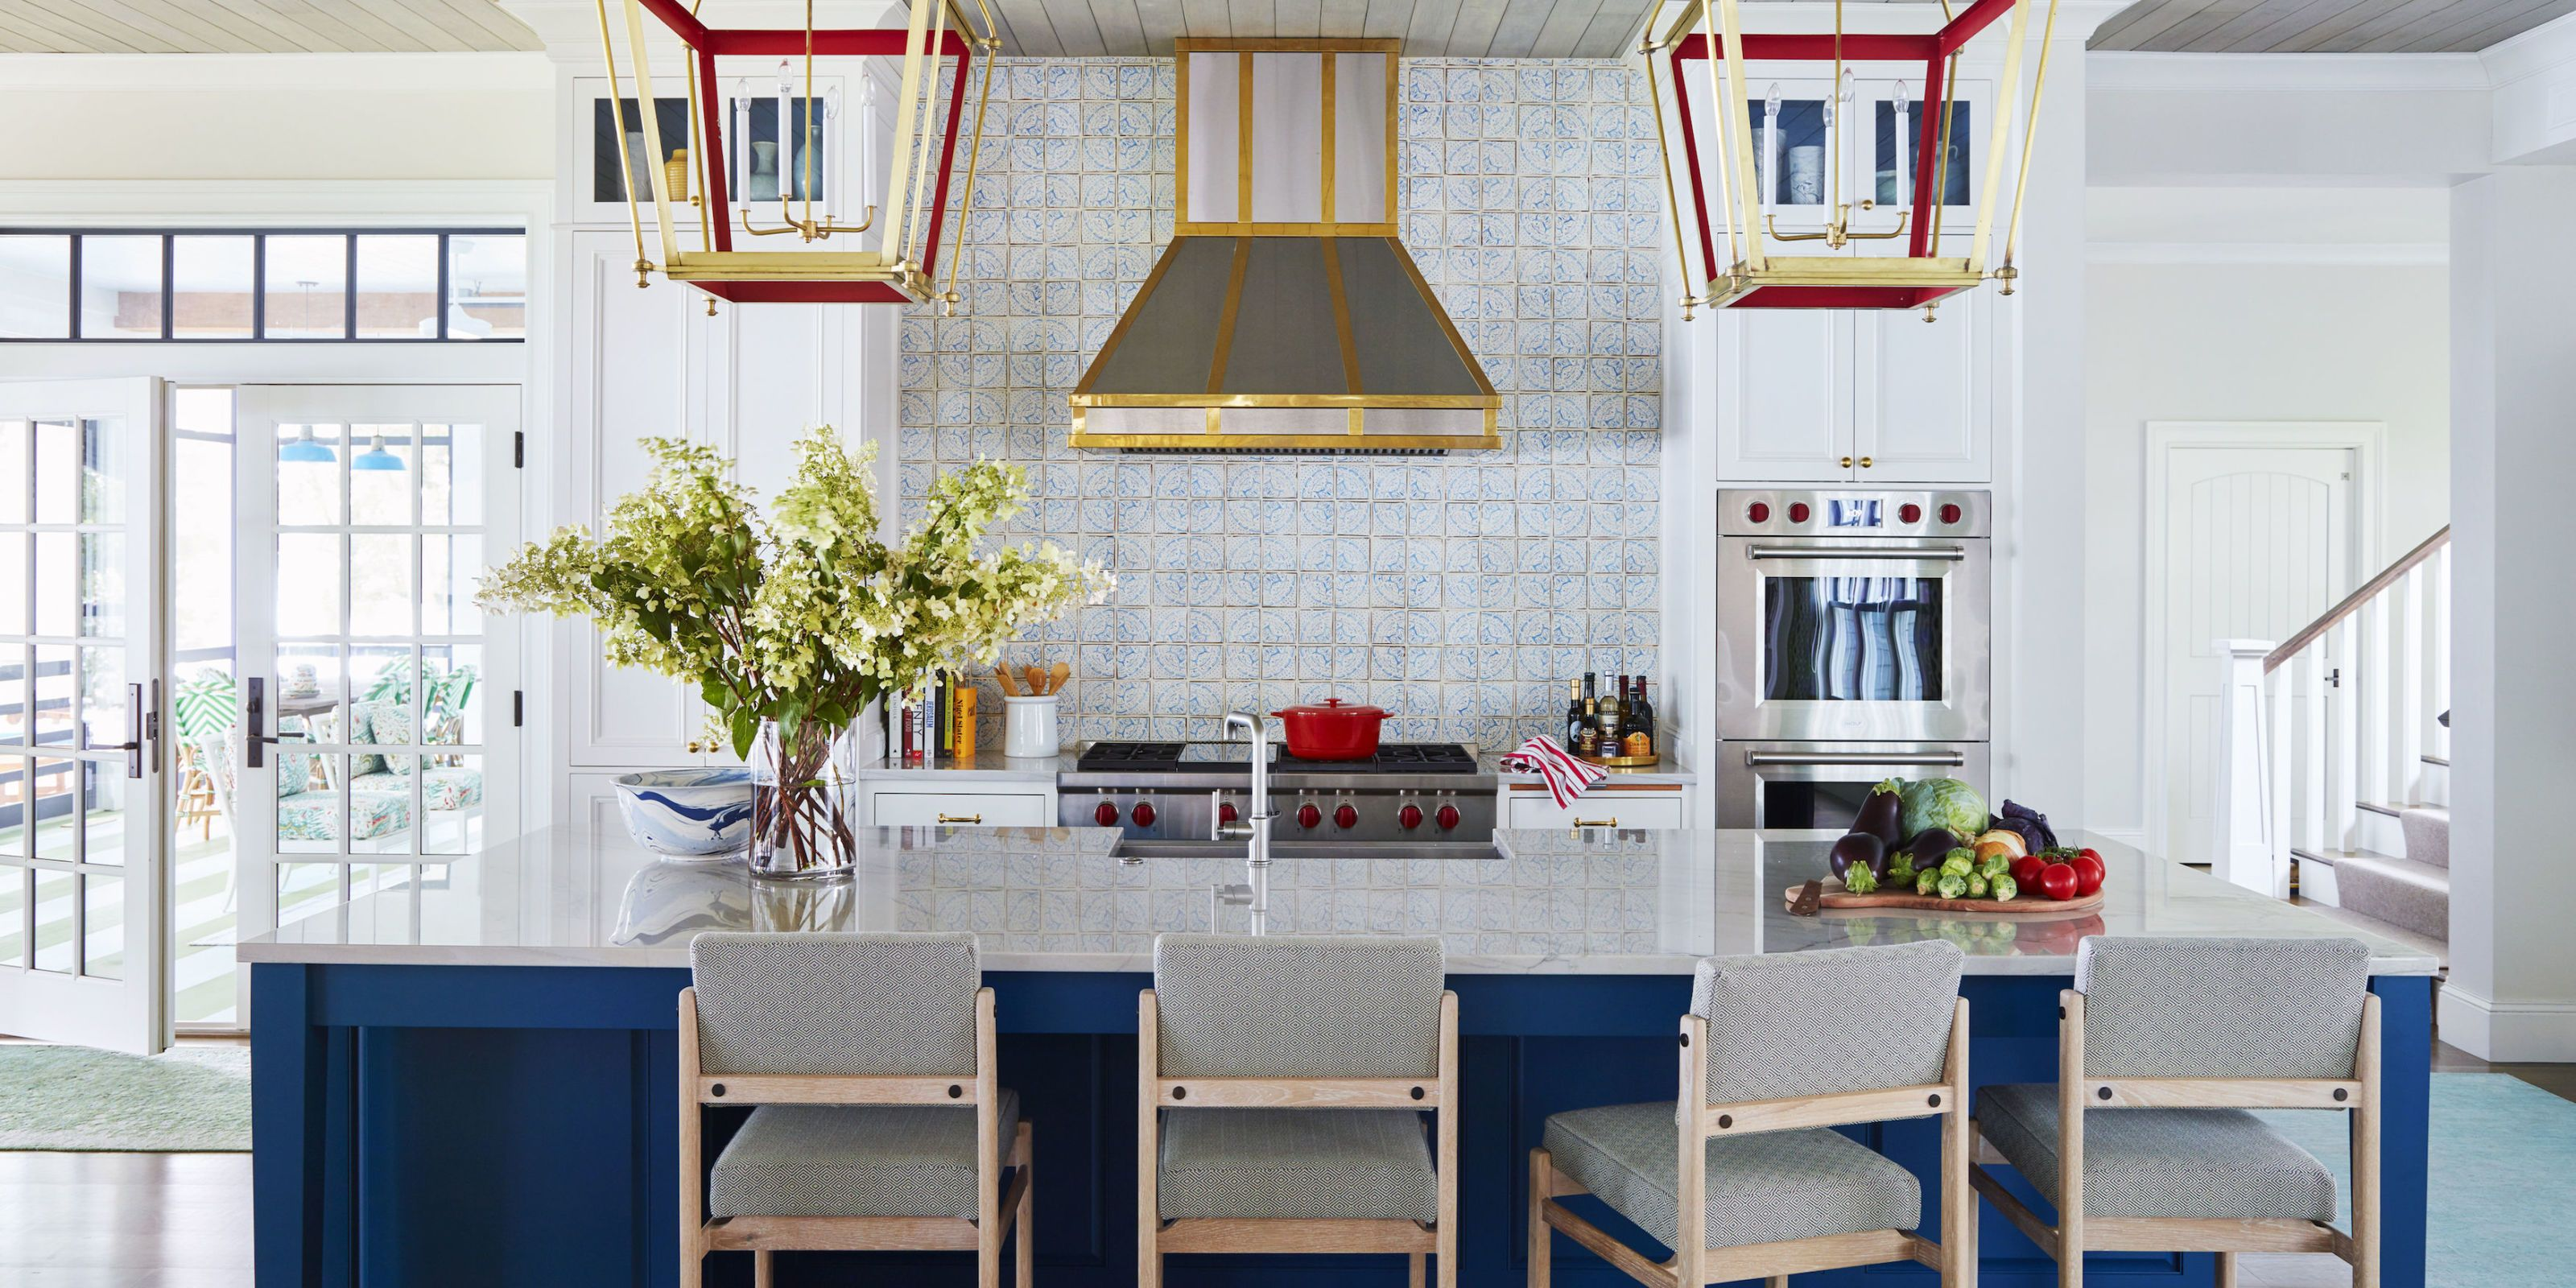 Wisconsin Lake House Summer Thornton Designs a Colorful Vacation Spot